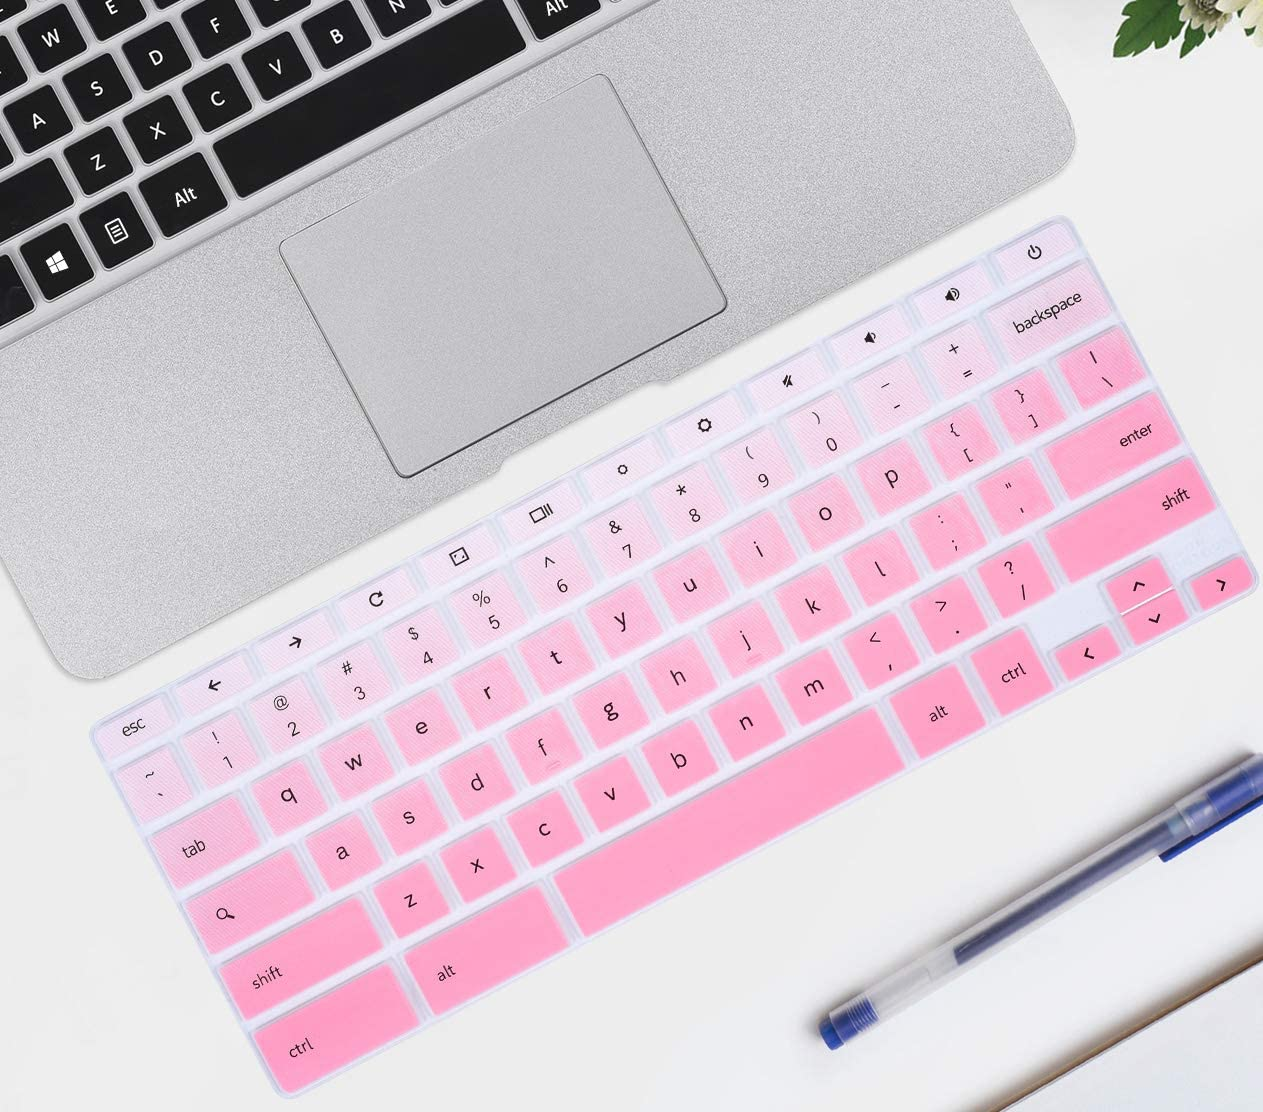 "Keyboard Cover Skin Compatible with Samsung Chromebook 11.6"" 3 4 XE501C13 XE500C13 XE310XBA,Samsung Chromebook 2 XE500C12, 12.2 Samsung Chromebook Plus V2 2-in-1 XE520QAB(Ombre Pink)"